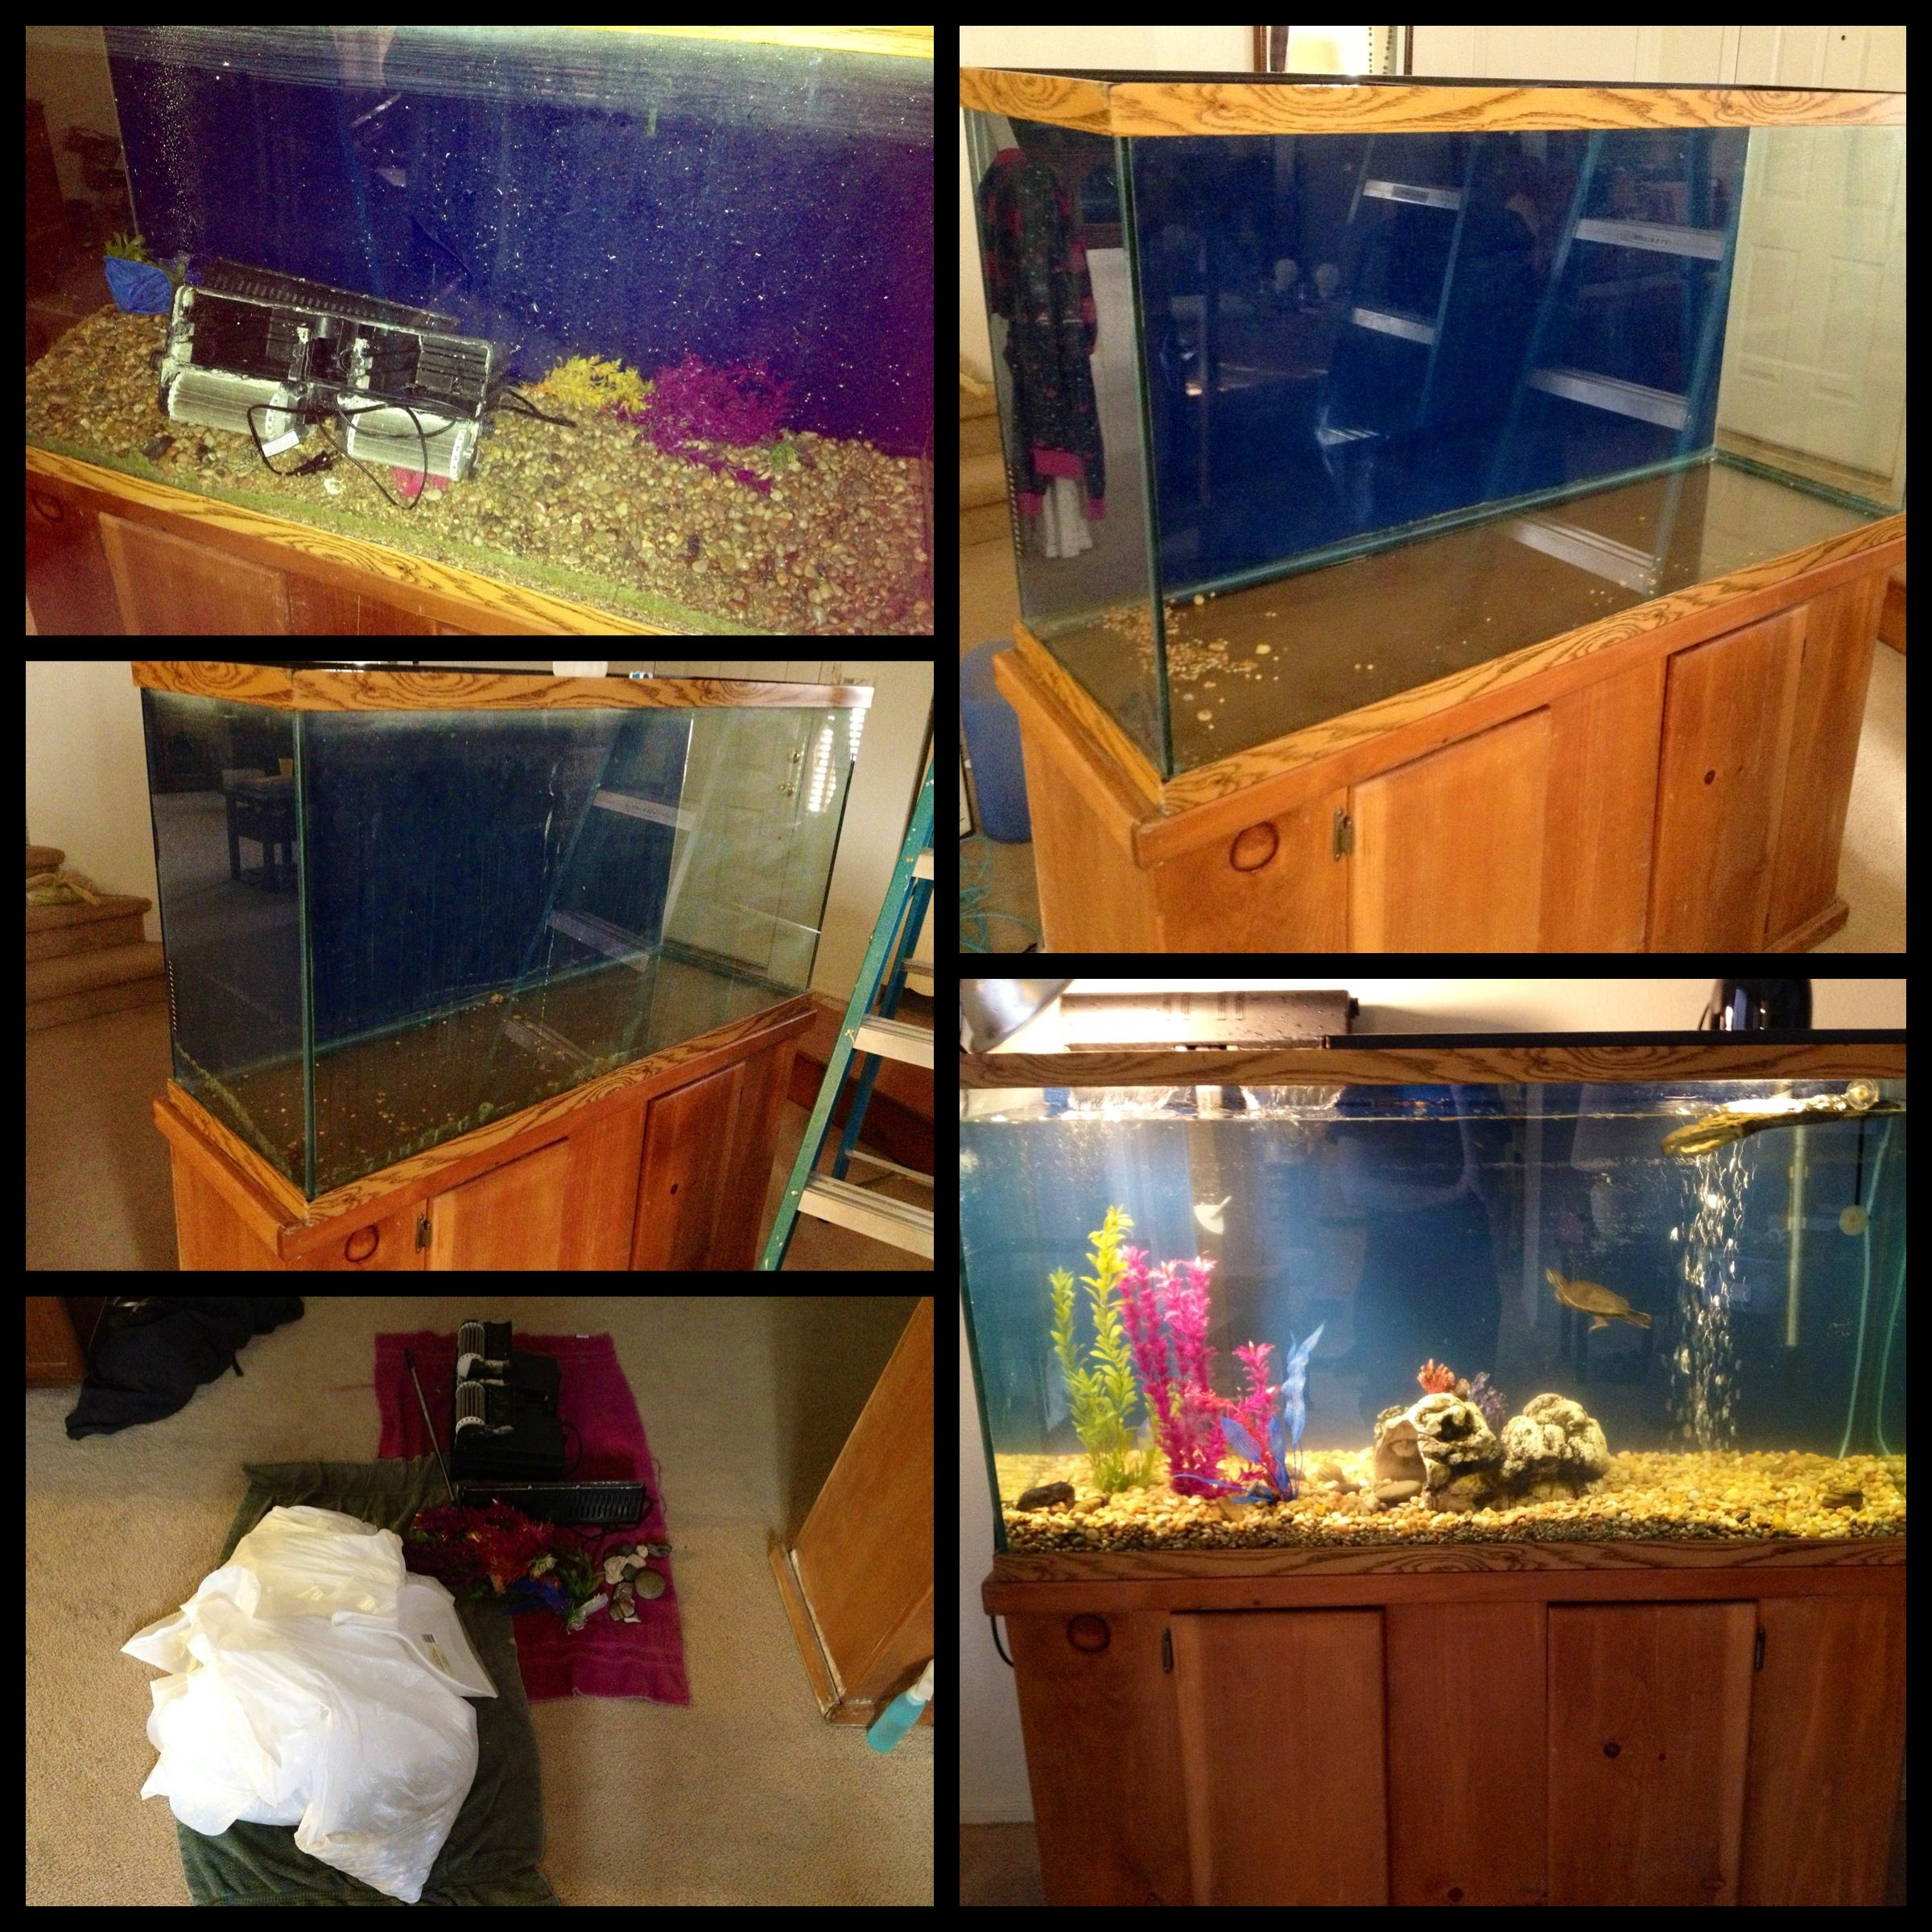 I bought this 75 gallon tank off of Craigslist It took me about 6